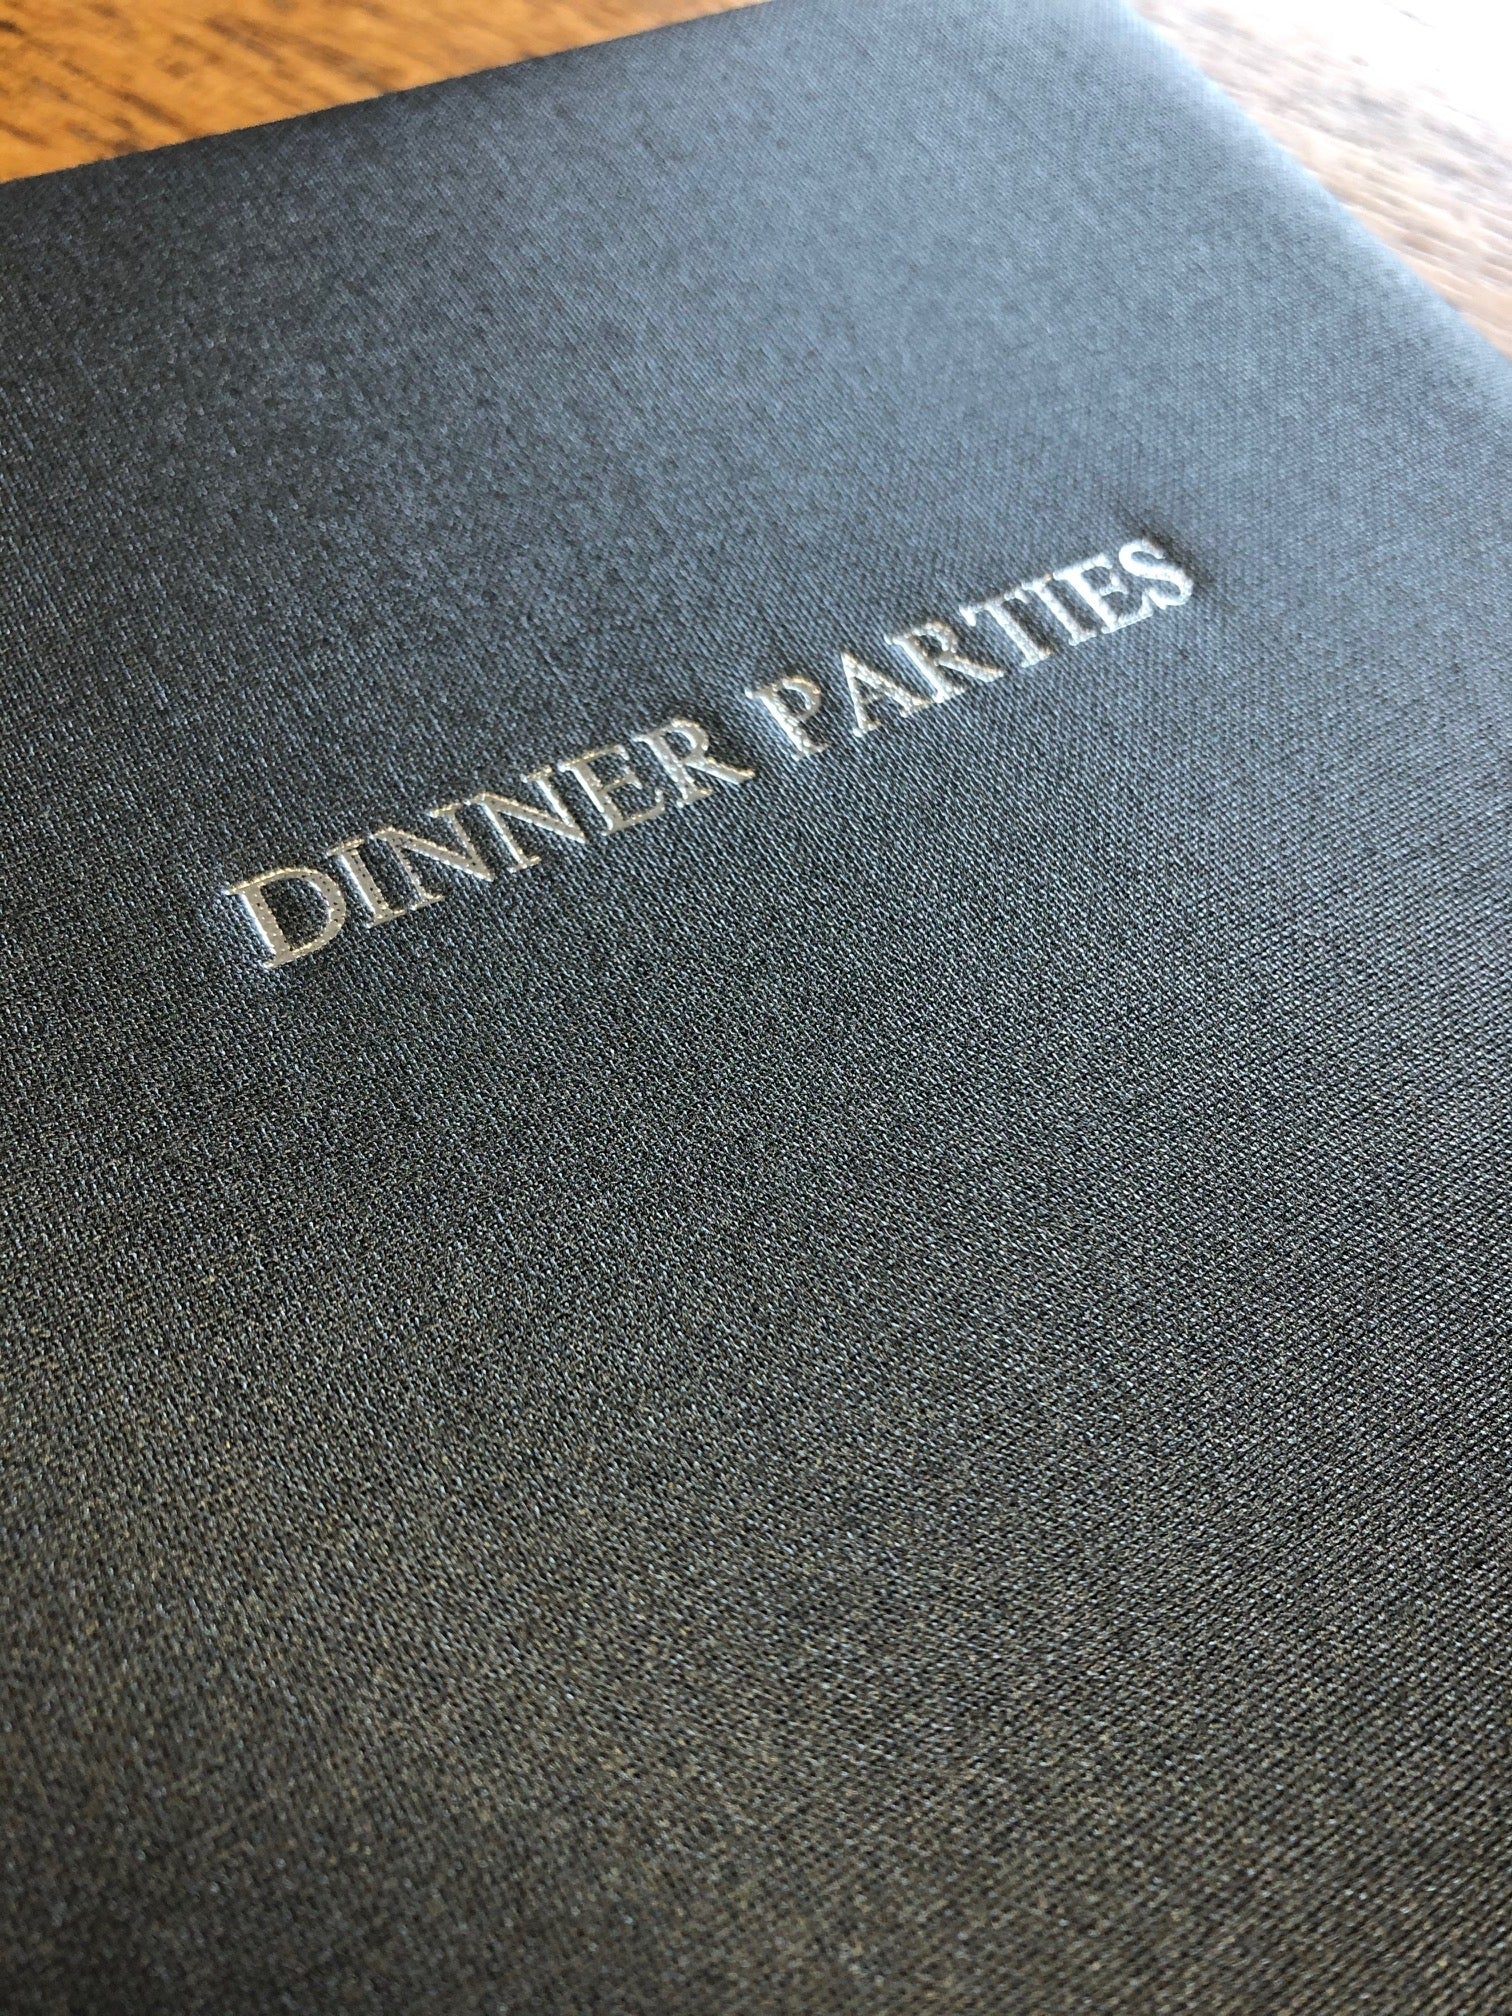 Text Image of Steel Grey Metallic Buckram Dinner Party Book